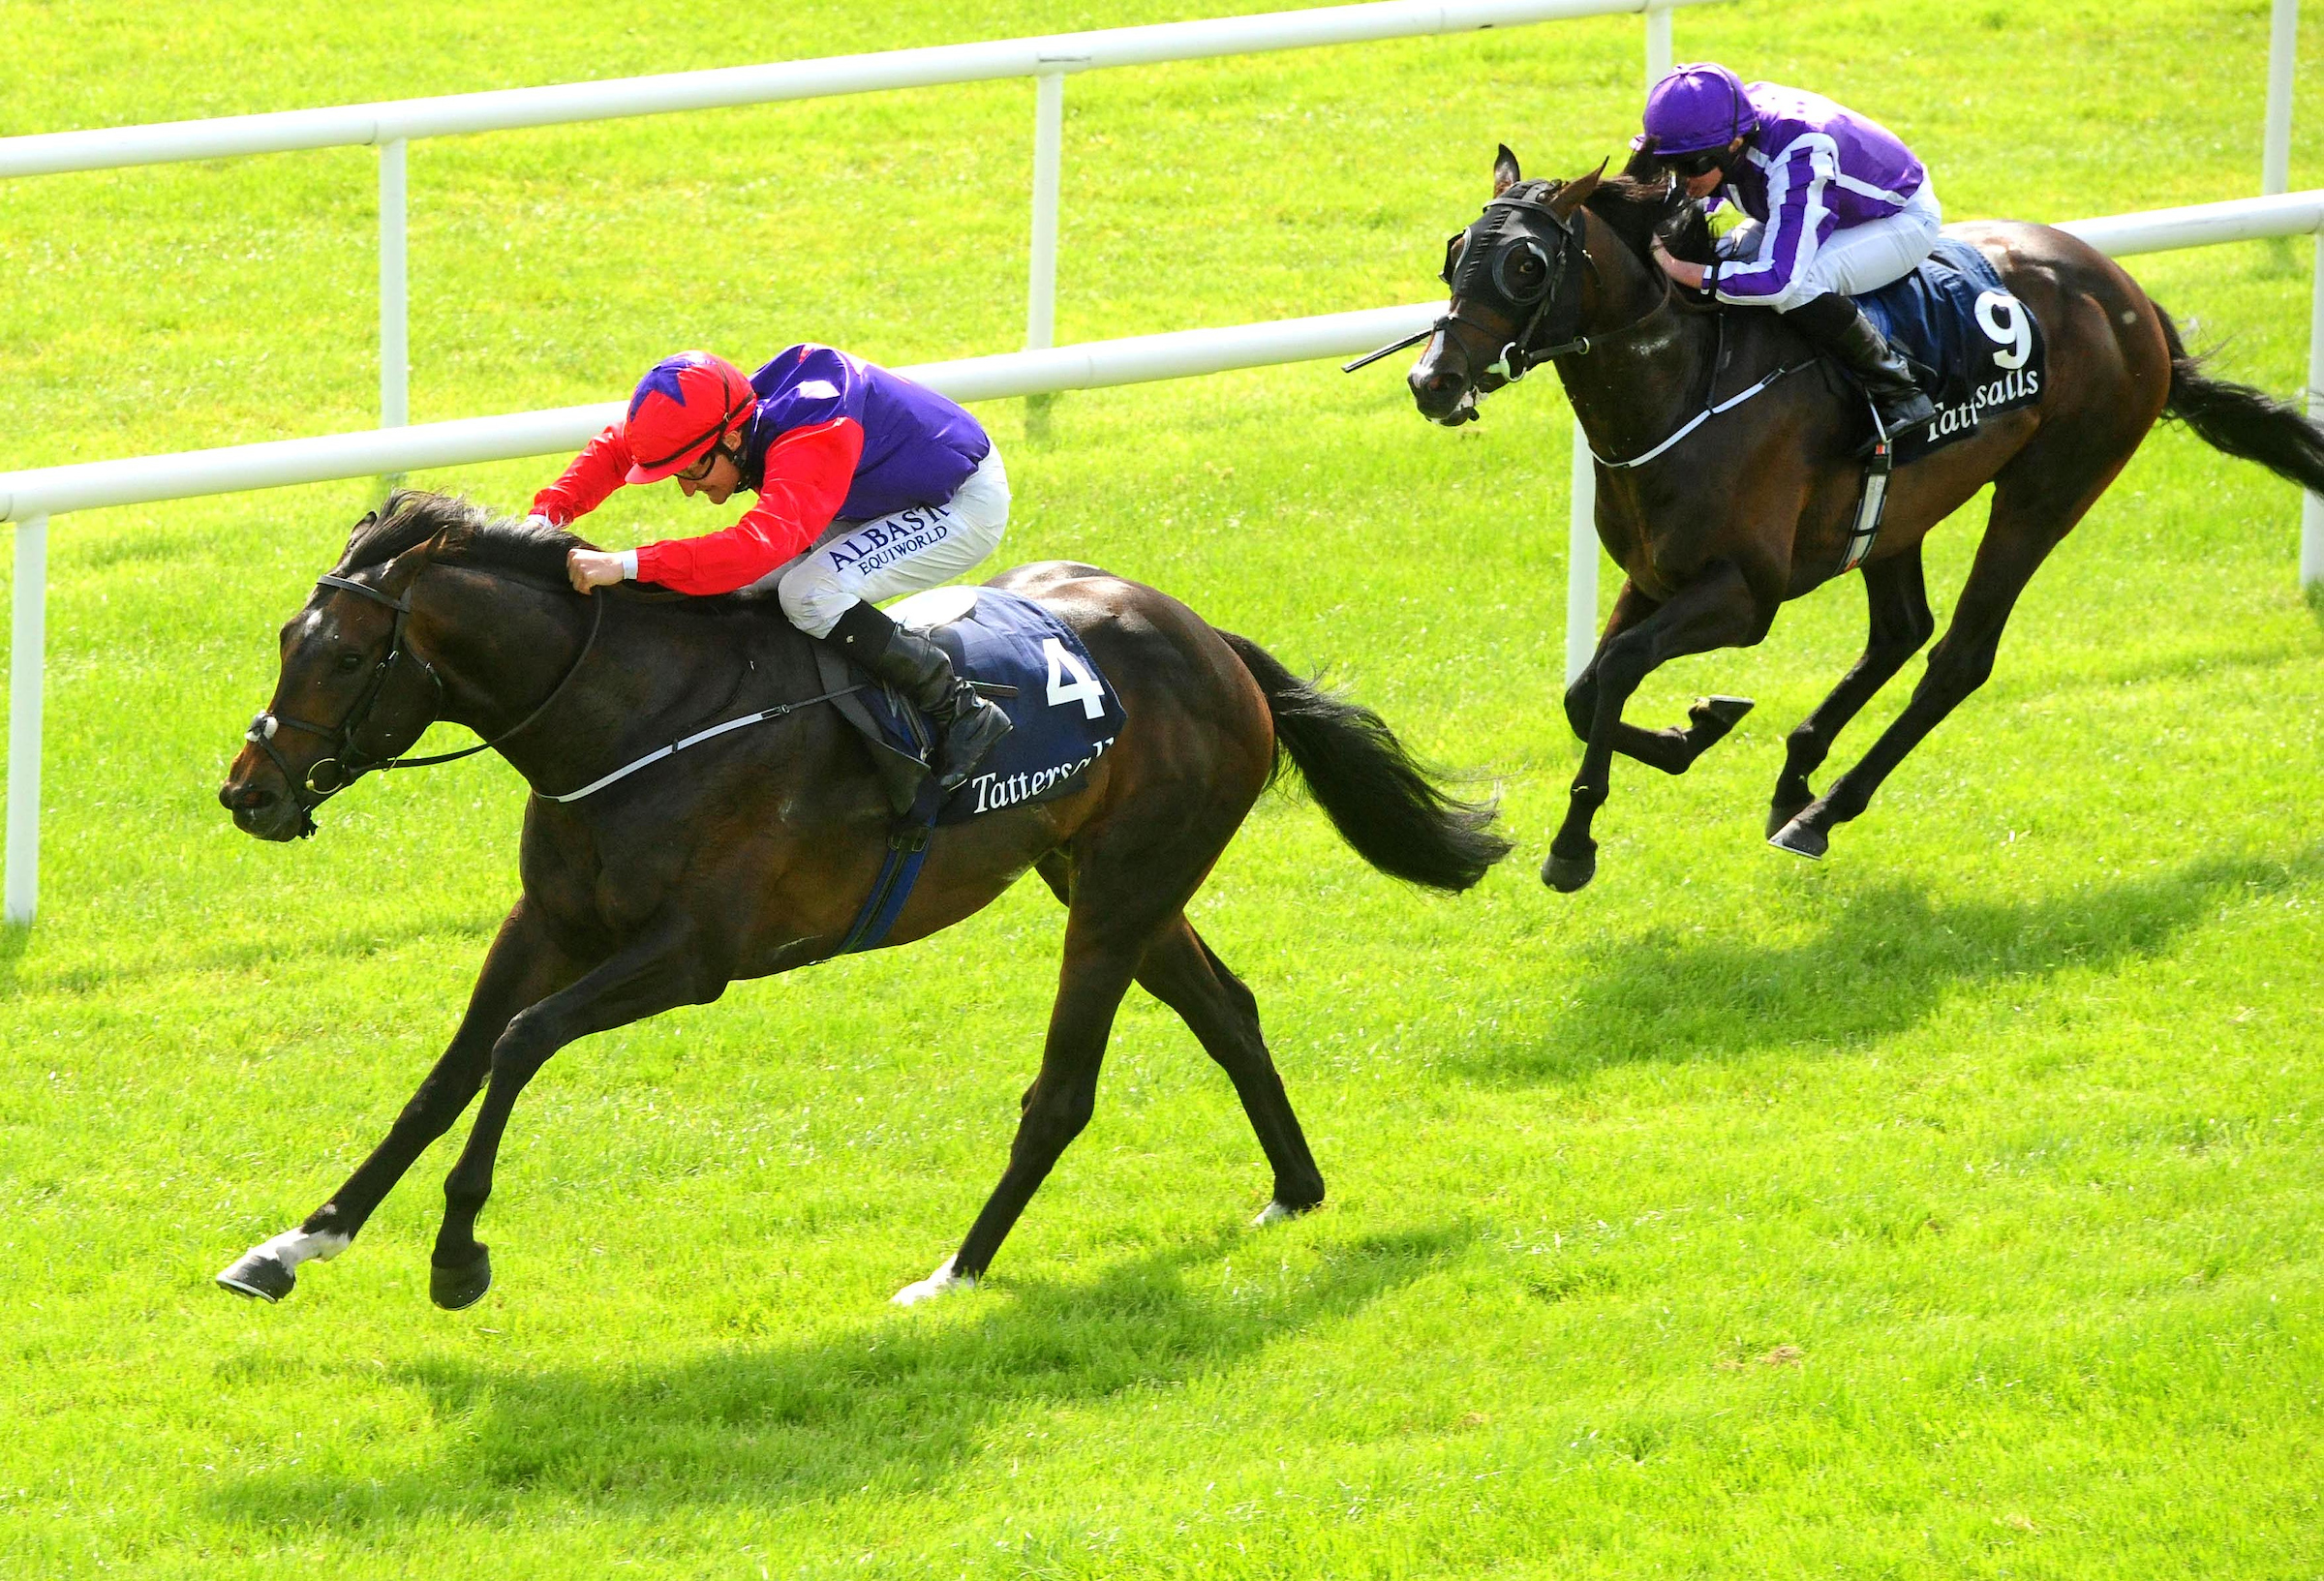 Romanised - Curragh - Shane Foley - FocusonRacing